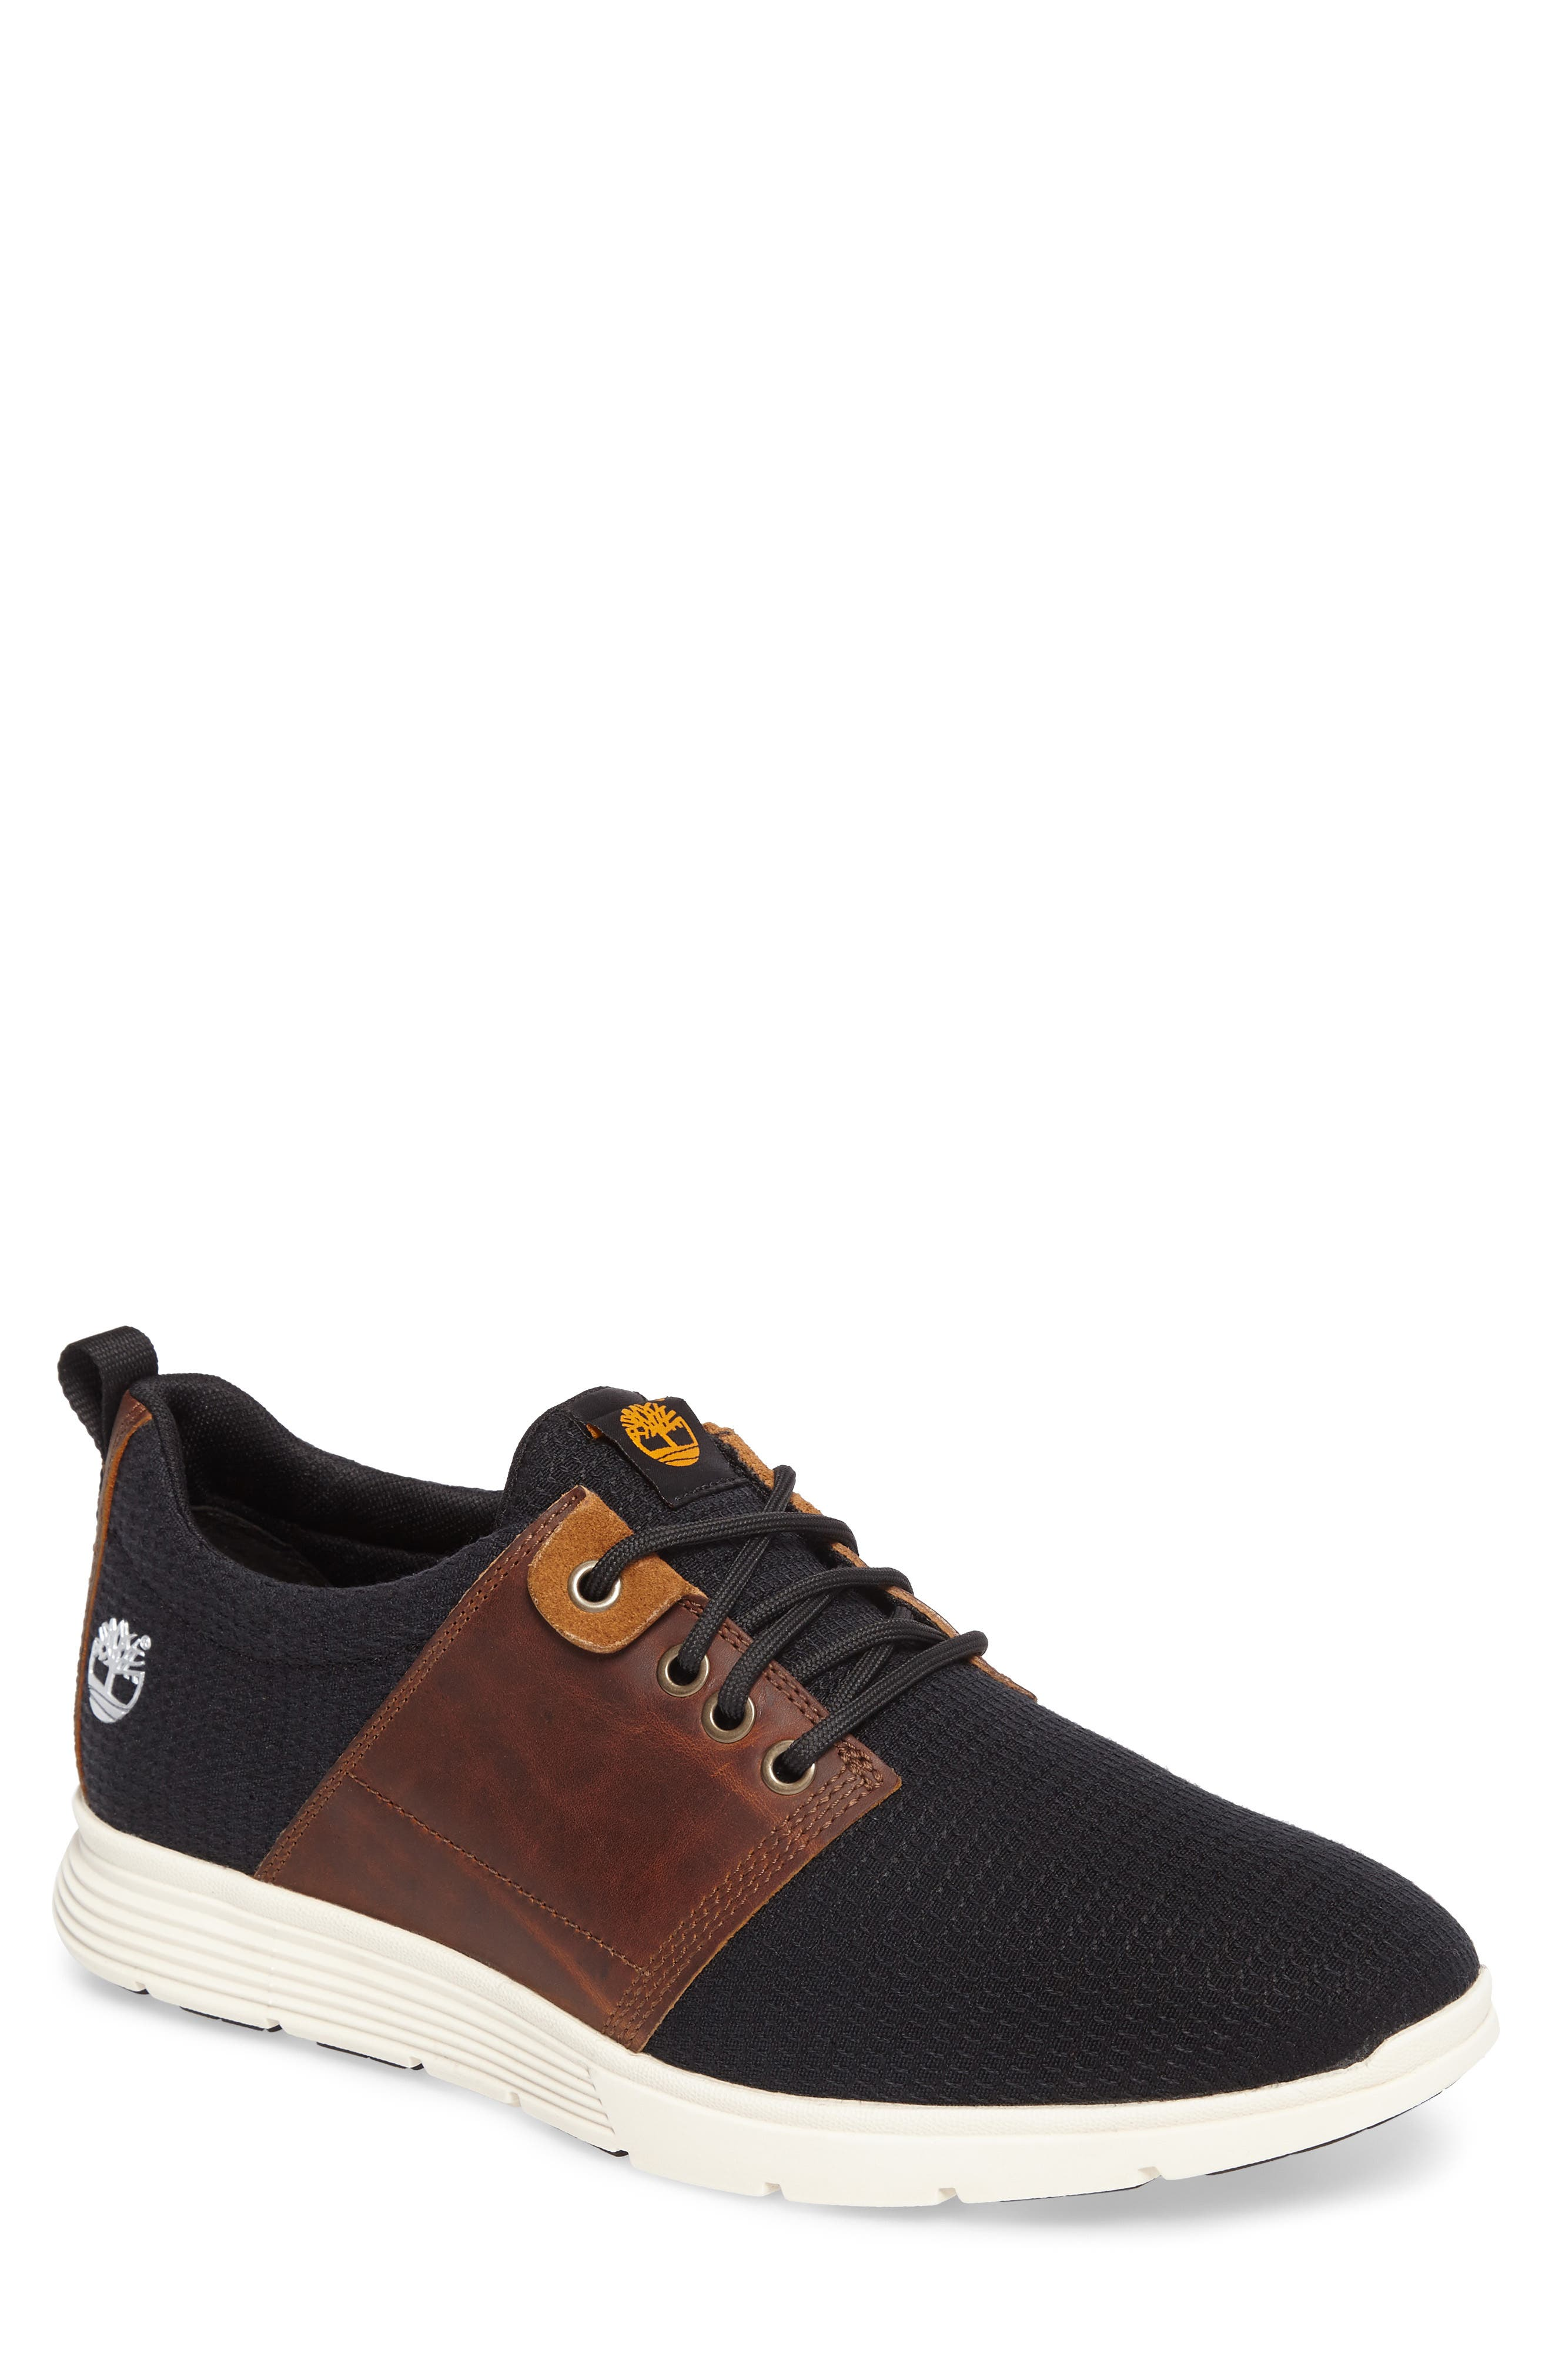 Main Image - Timberland Killington Derby (Men)